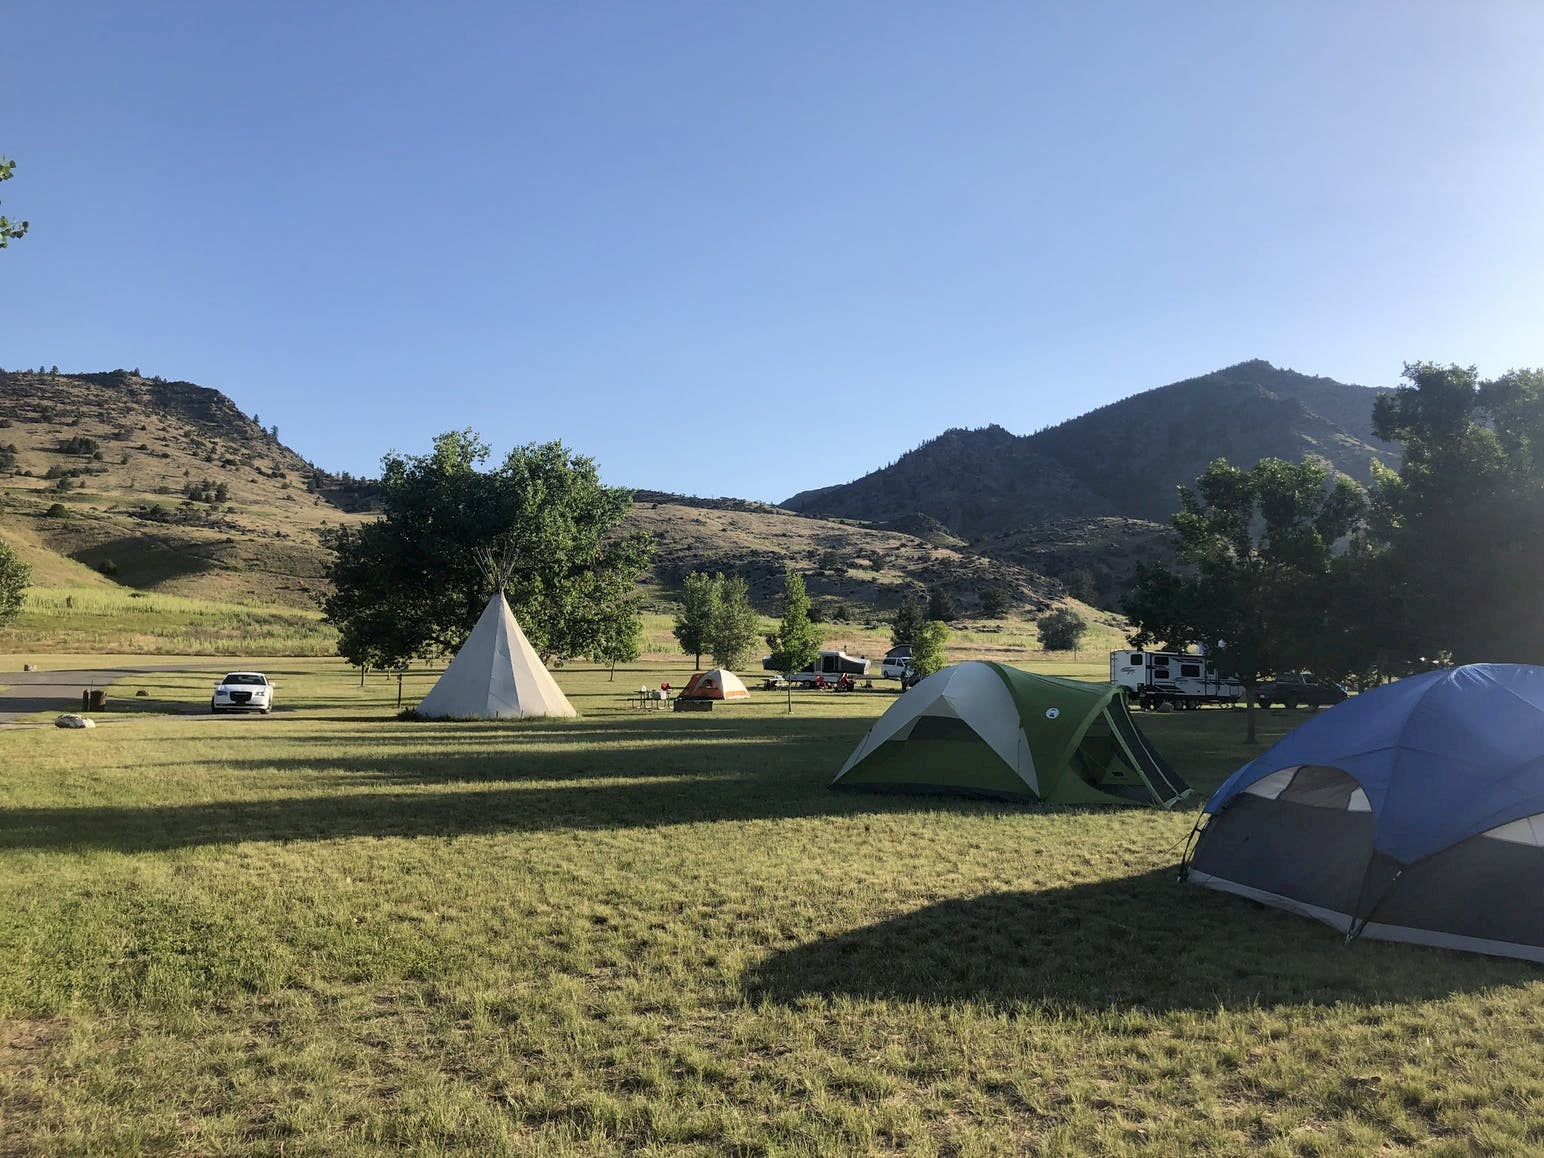 Assorted tents and glamping teepee set up in a field with mountains in the background.